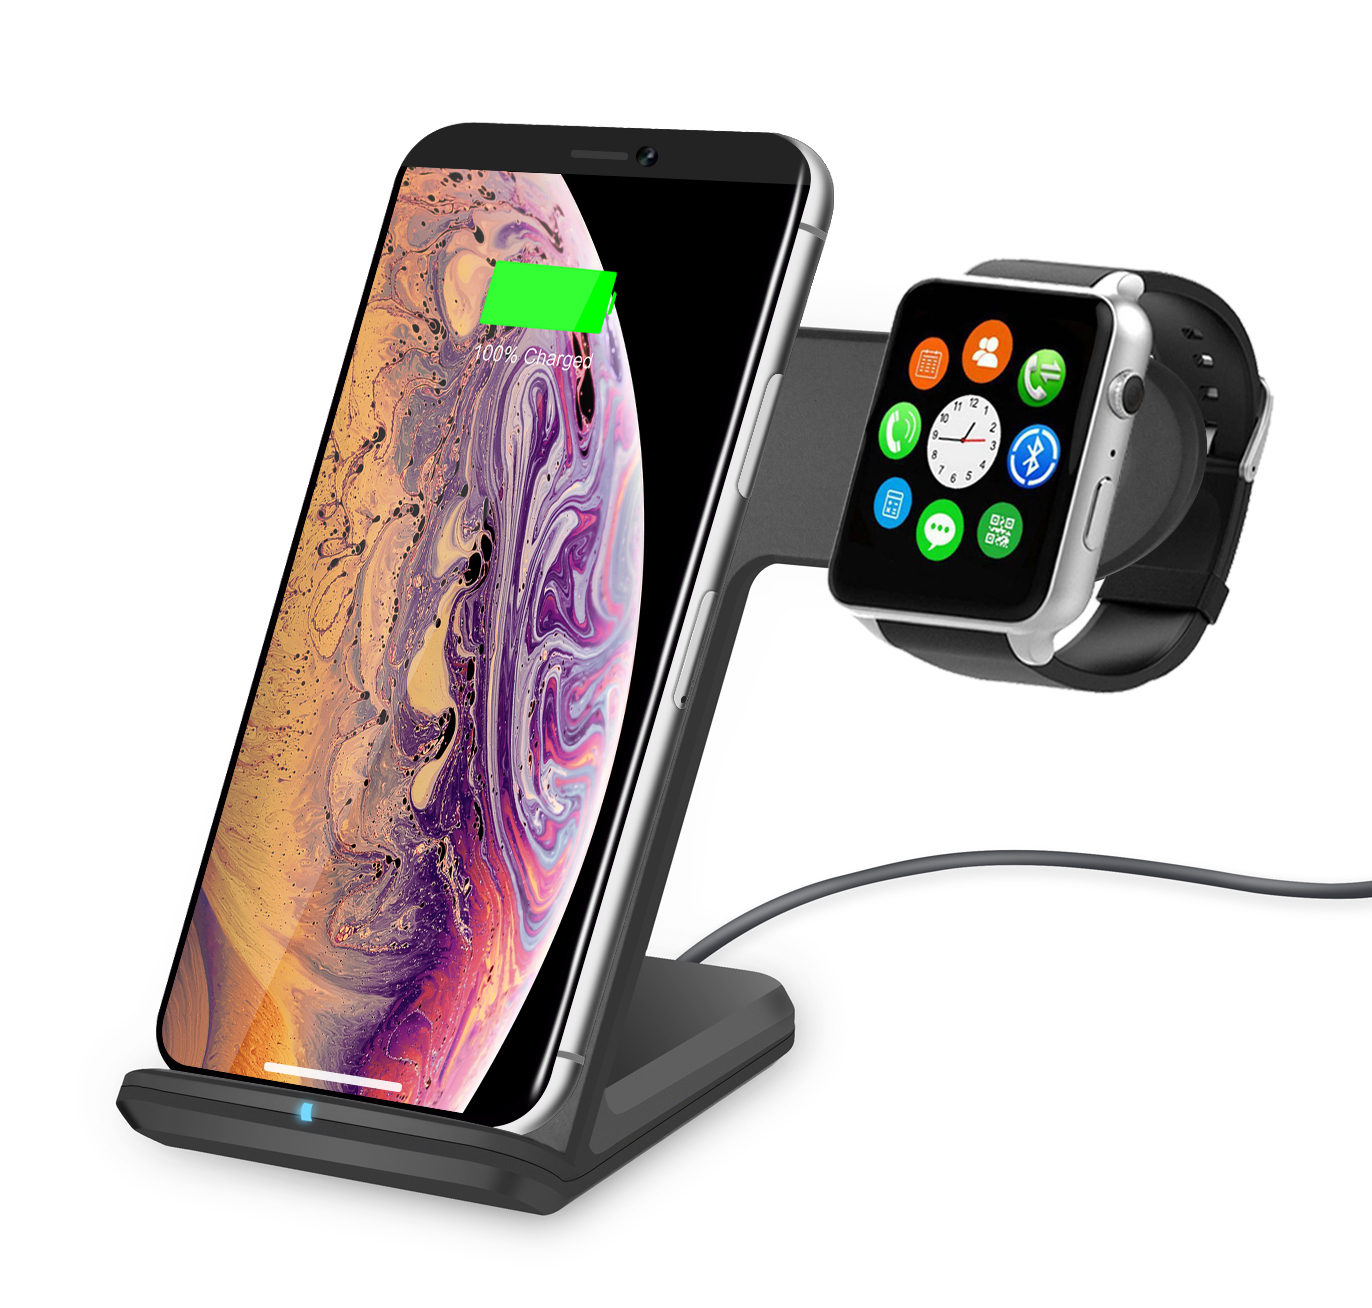 Qi Wireless Charger - Aspectek 2 in 1 Fast Wireless Charging Stand Compatible with iPhone 8/8 Plus/iPhone X/XS, Apple Watch Series 2/3, Samsung S9/S9 Plus/Note 8/ S8/S8 Plus